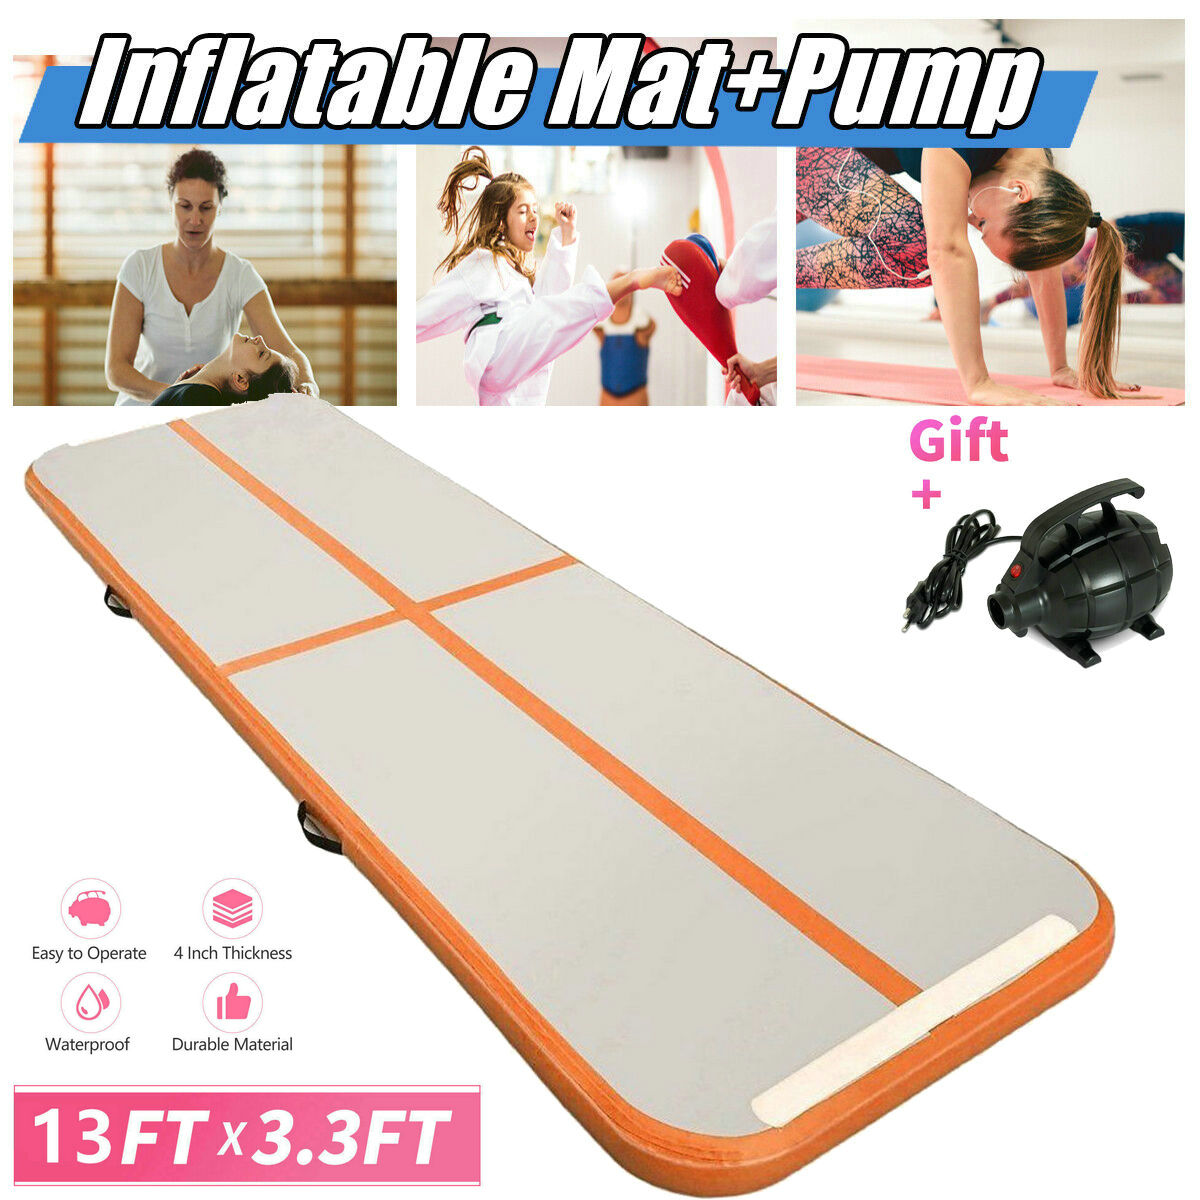 13ft x 3.3ft Inflatable Tumbling Mat Track Air Track Floor Home Gymnastics US TO